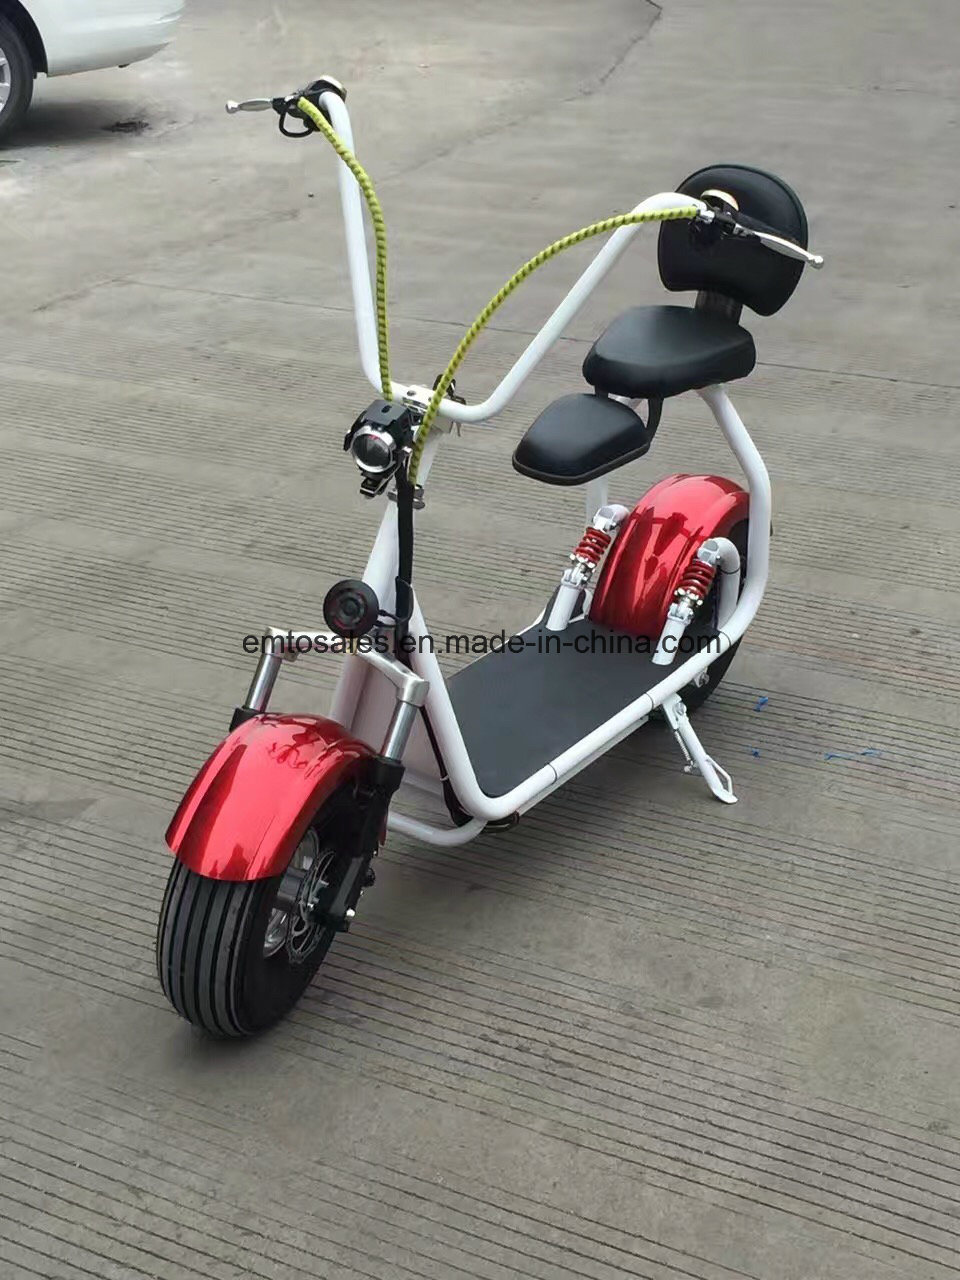 Electric Motor 500W Junior City Coco E Scooter